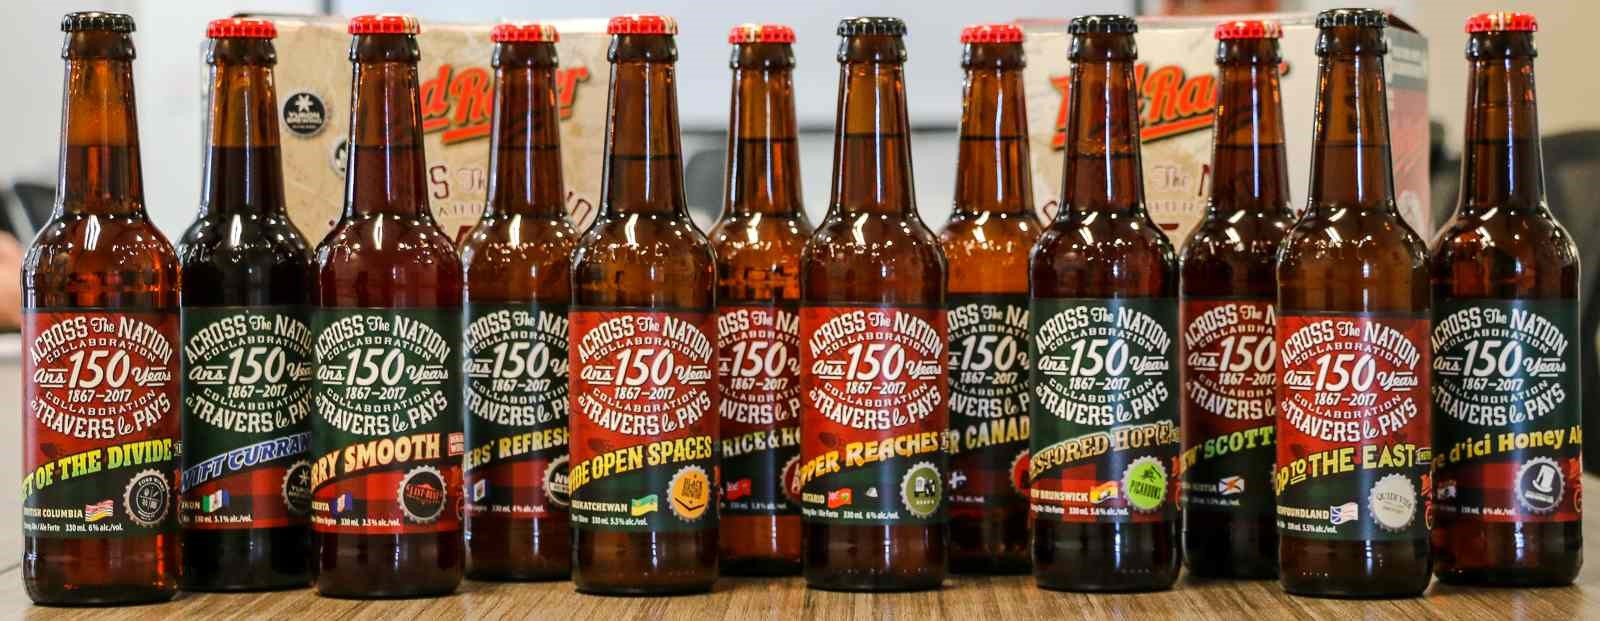 Red Racer Across The Nation Collaboration Bottles Canada 150 Central City Brewers and Distillers